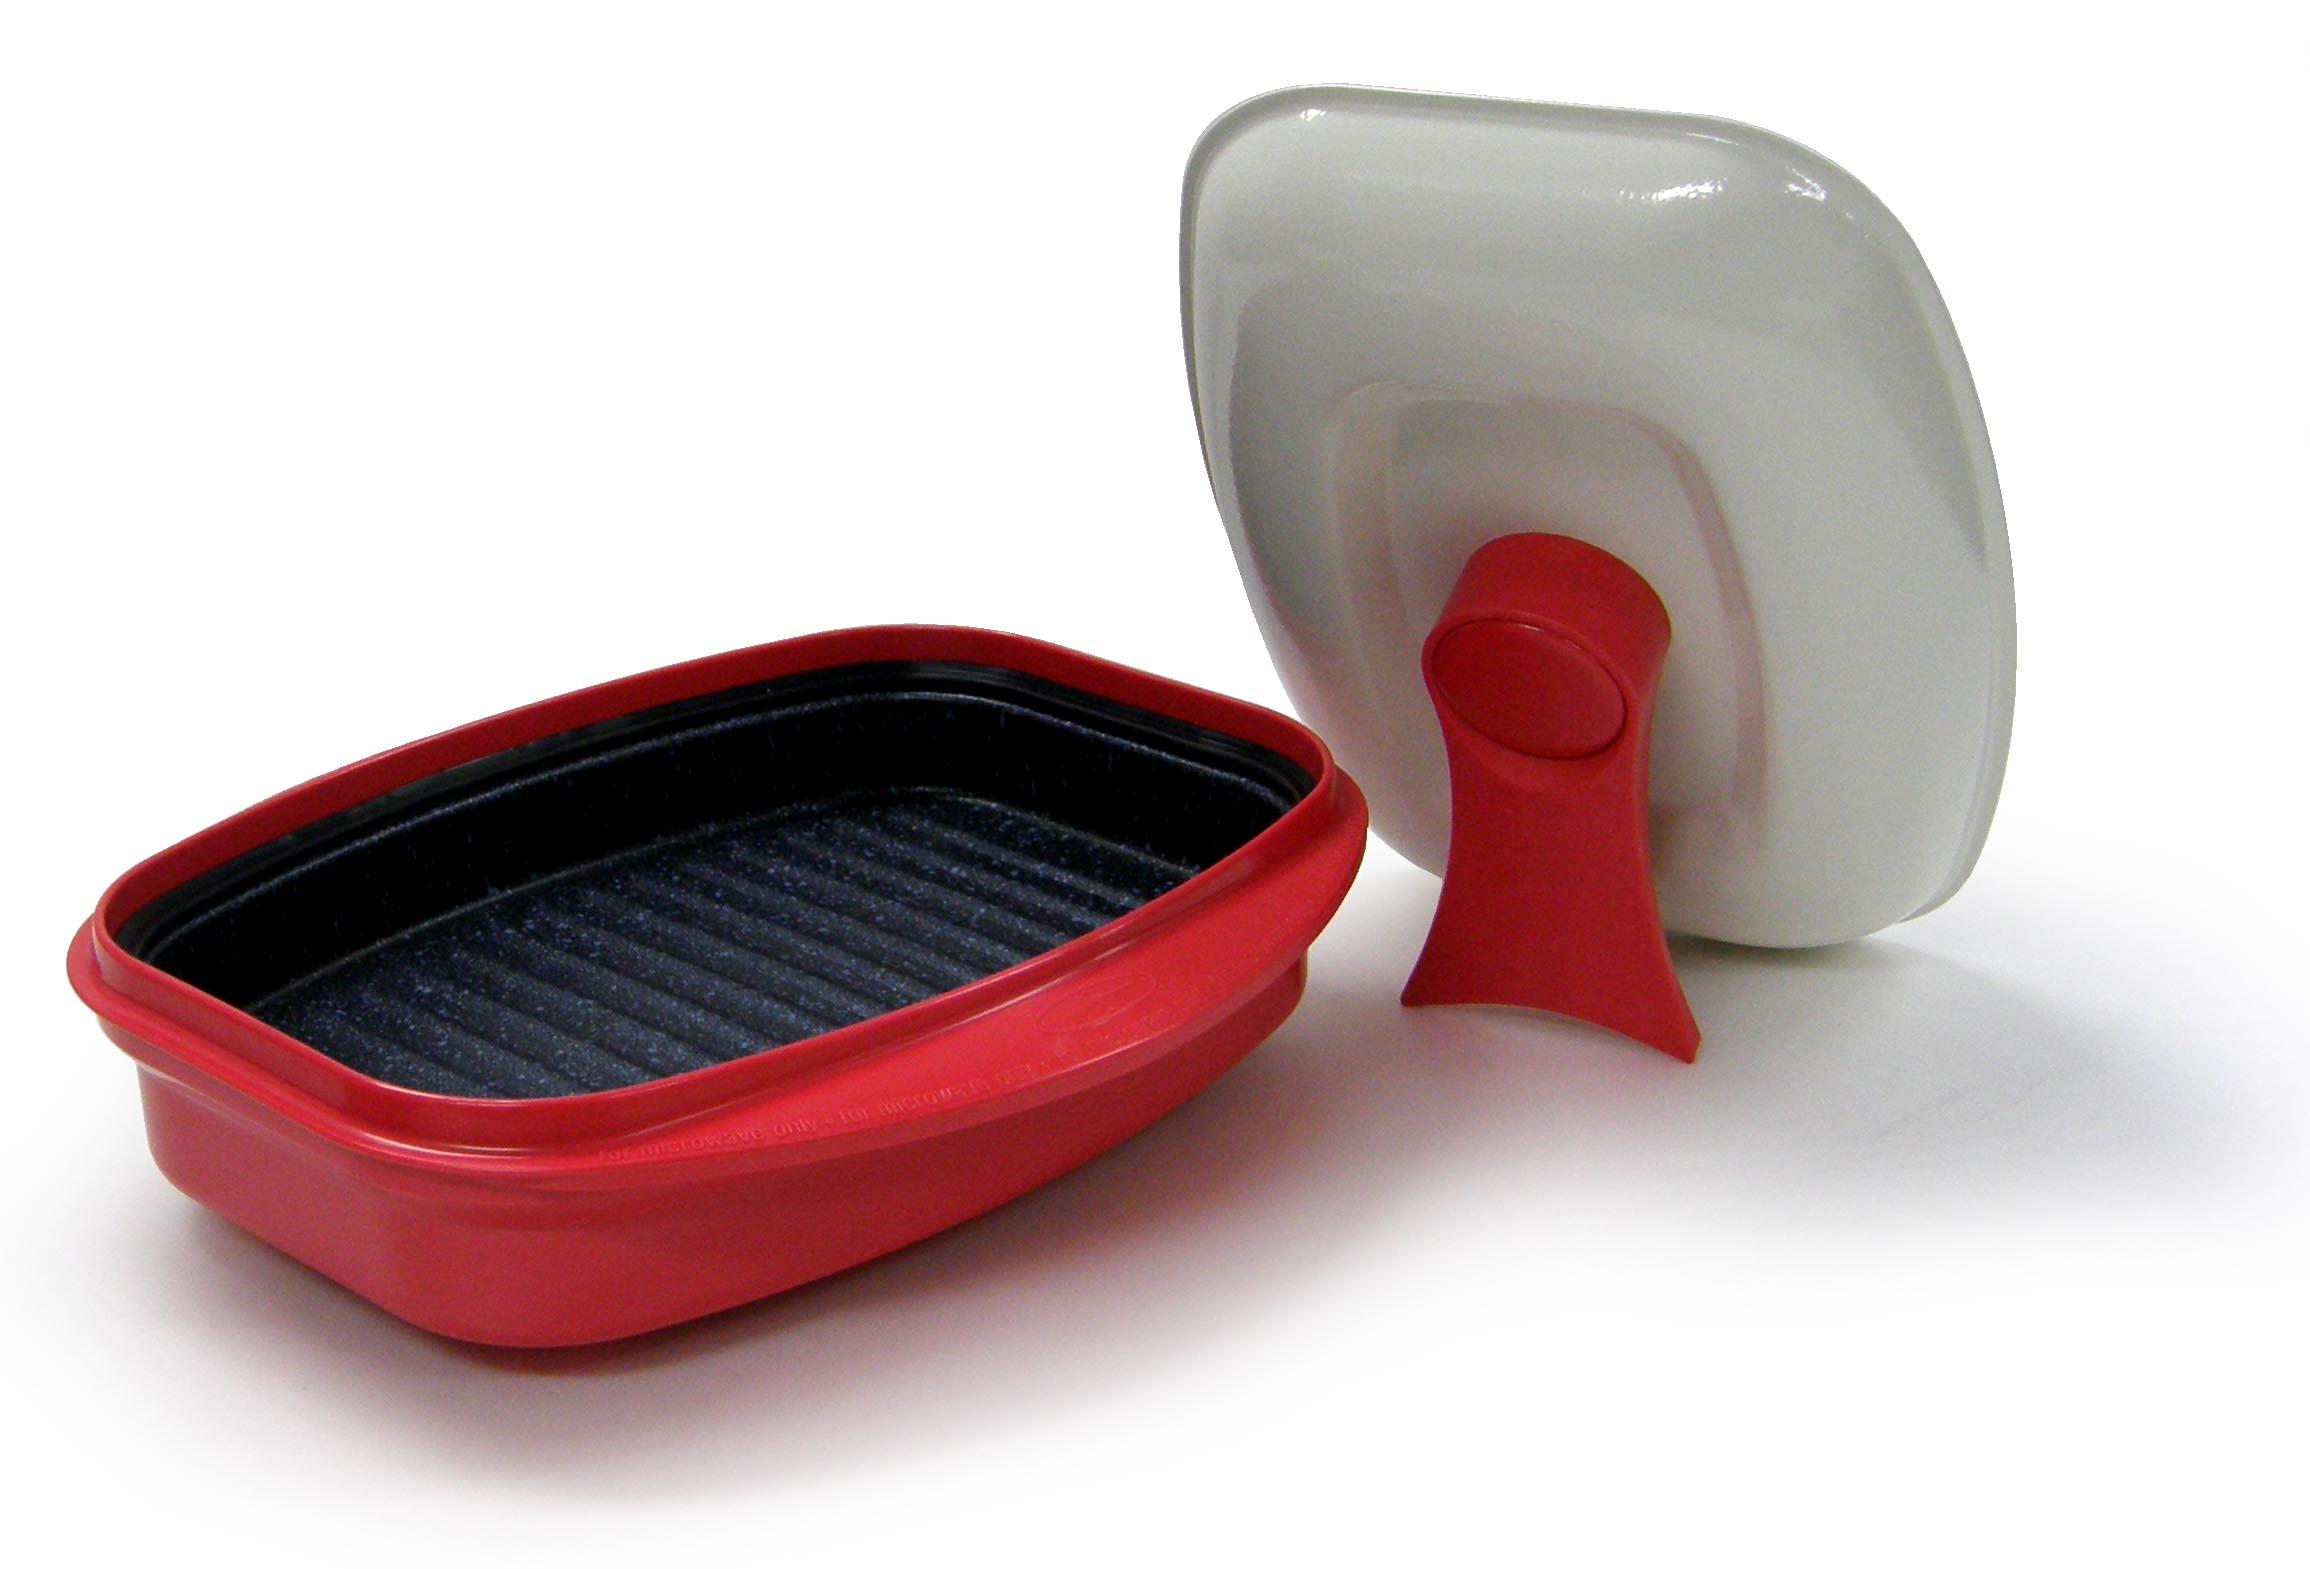 Amazon.com: Microhearth Grill Pan for Microwave Cooking